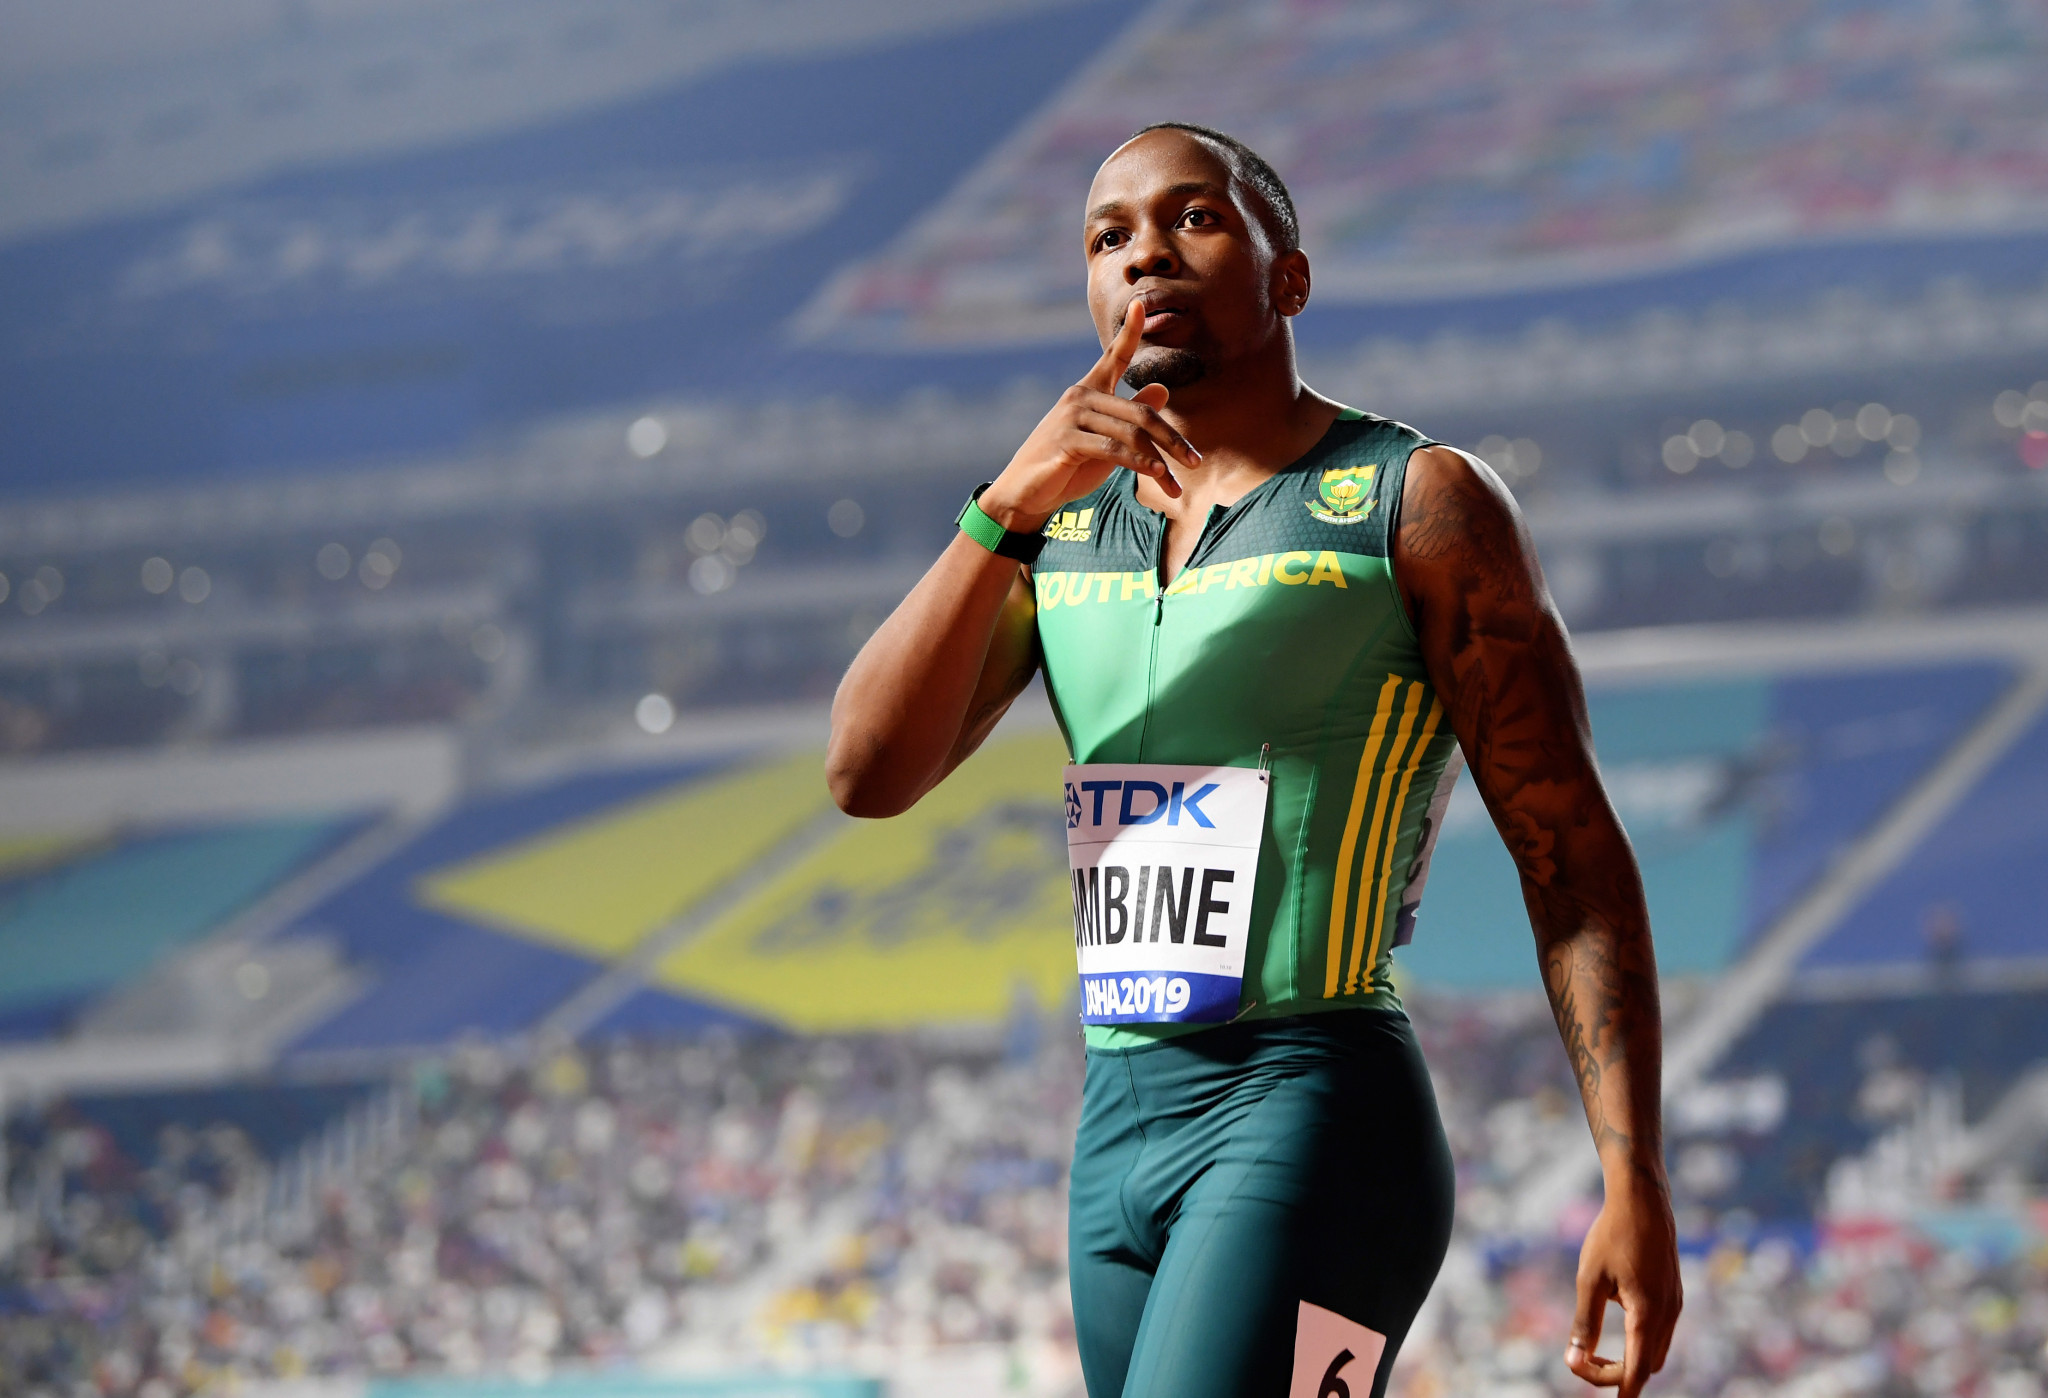 Simbine clocks men's 100m world lead in South Africa